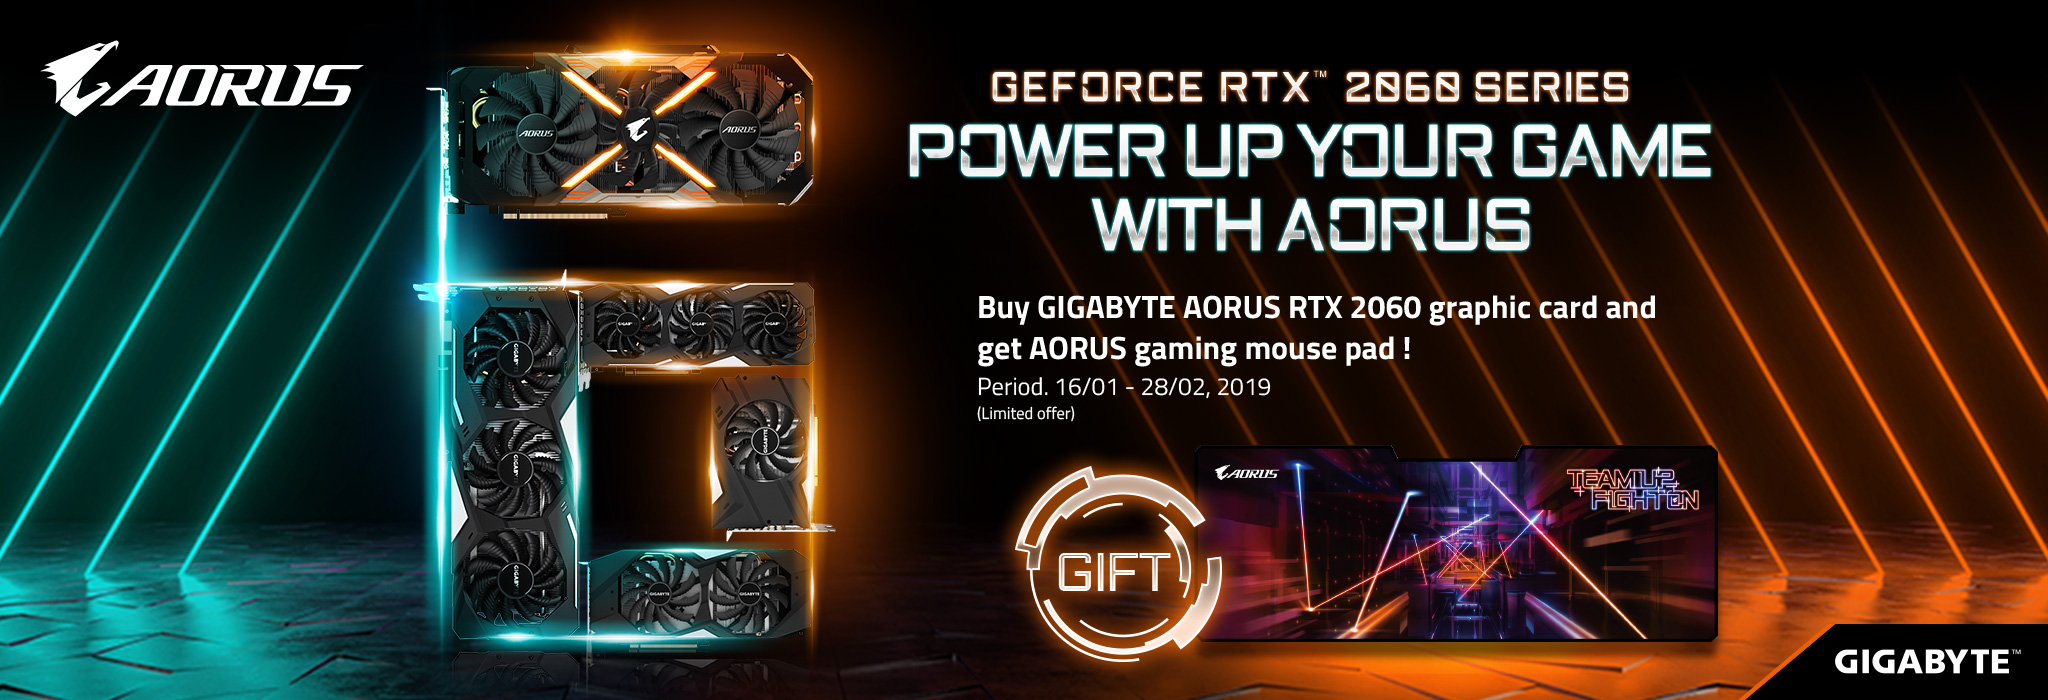 POWER UP YOUR GAME WITH AORUS RTX2060_Singapore   AORUS